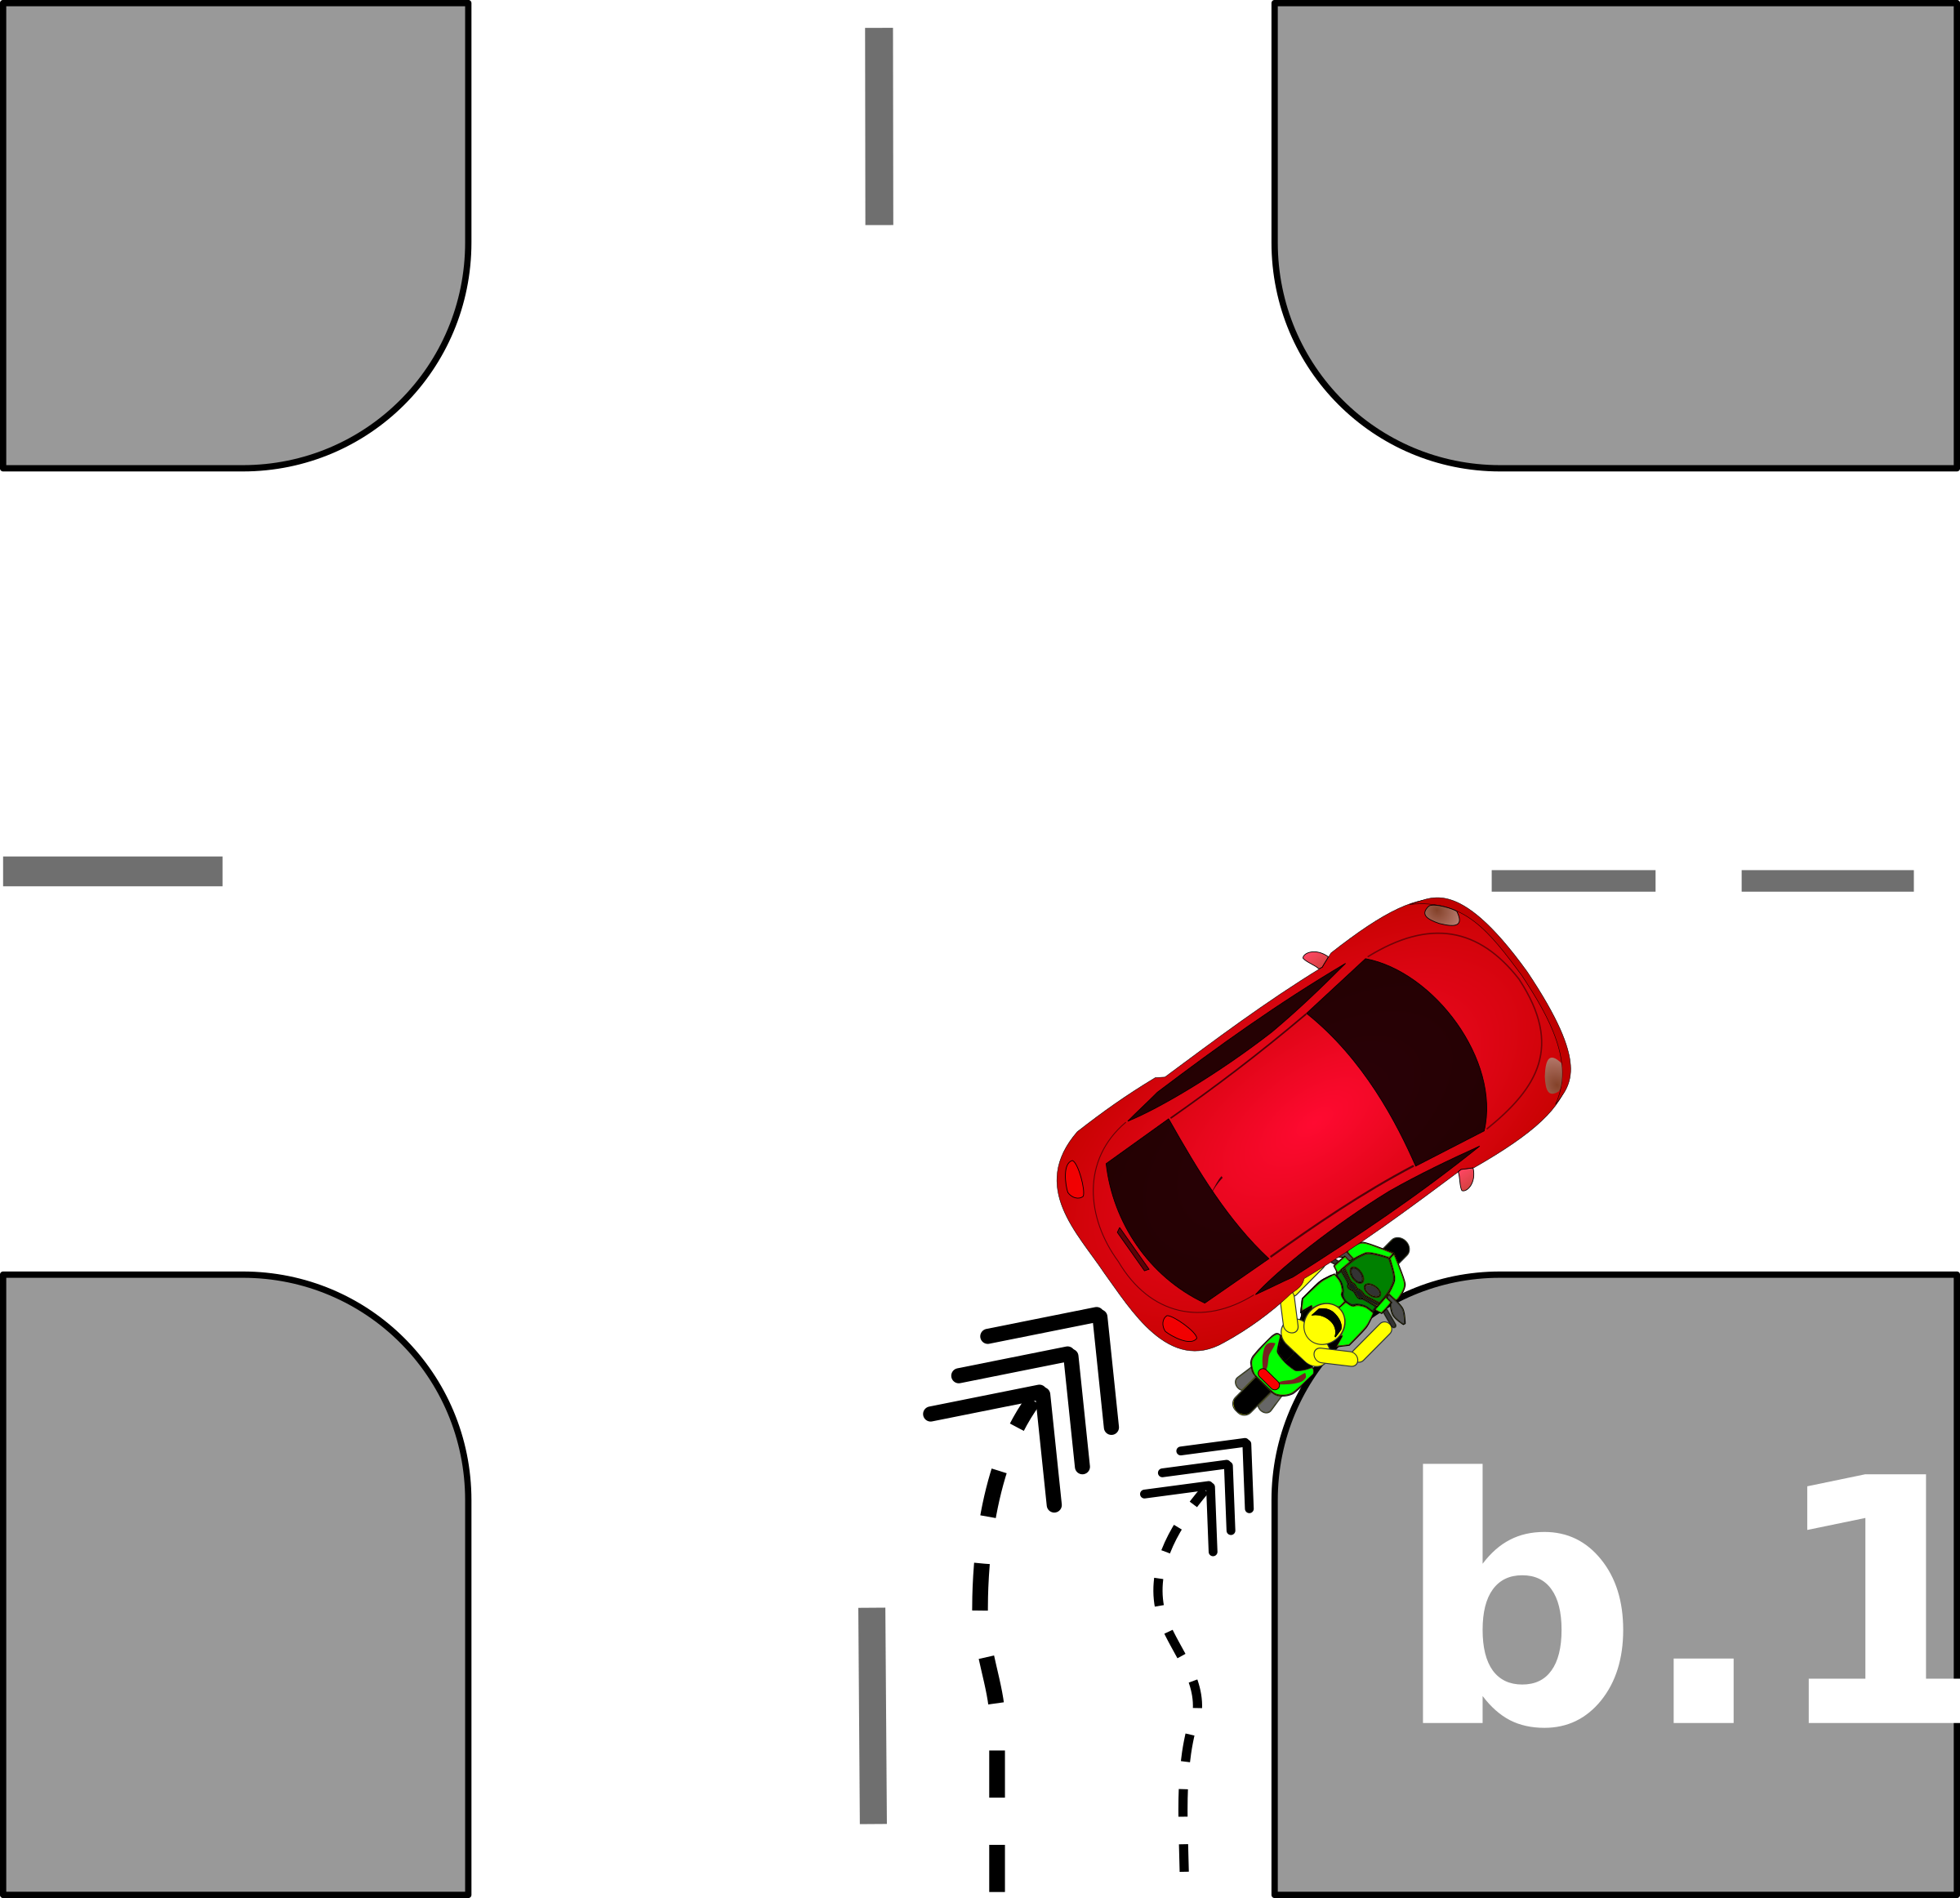 traffic accident pictograms b.1 by Gusta